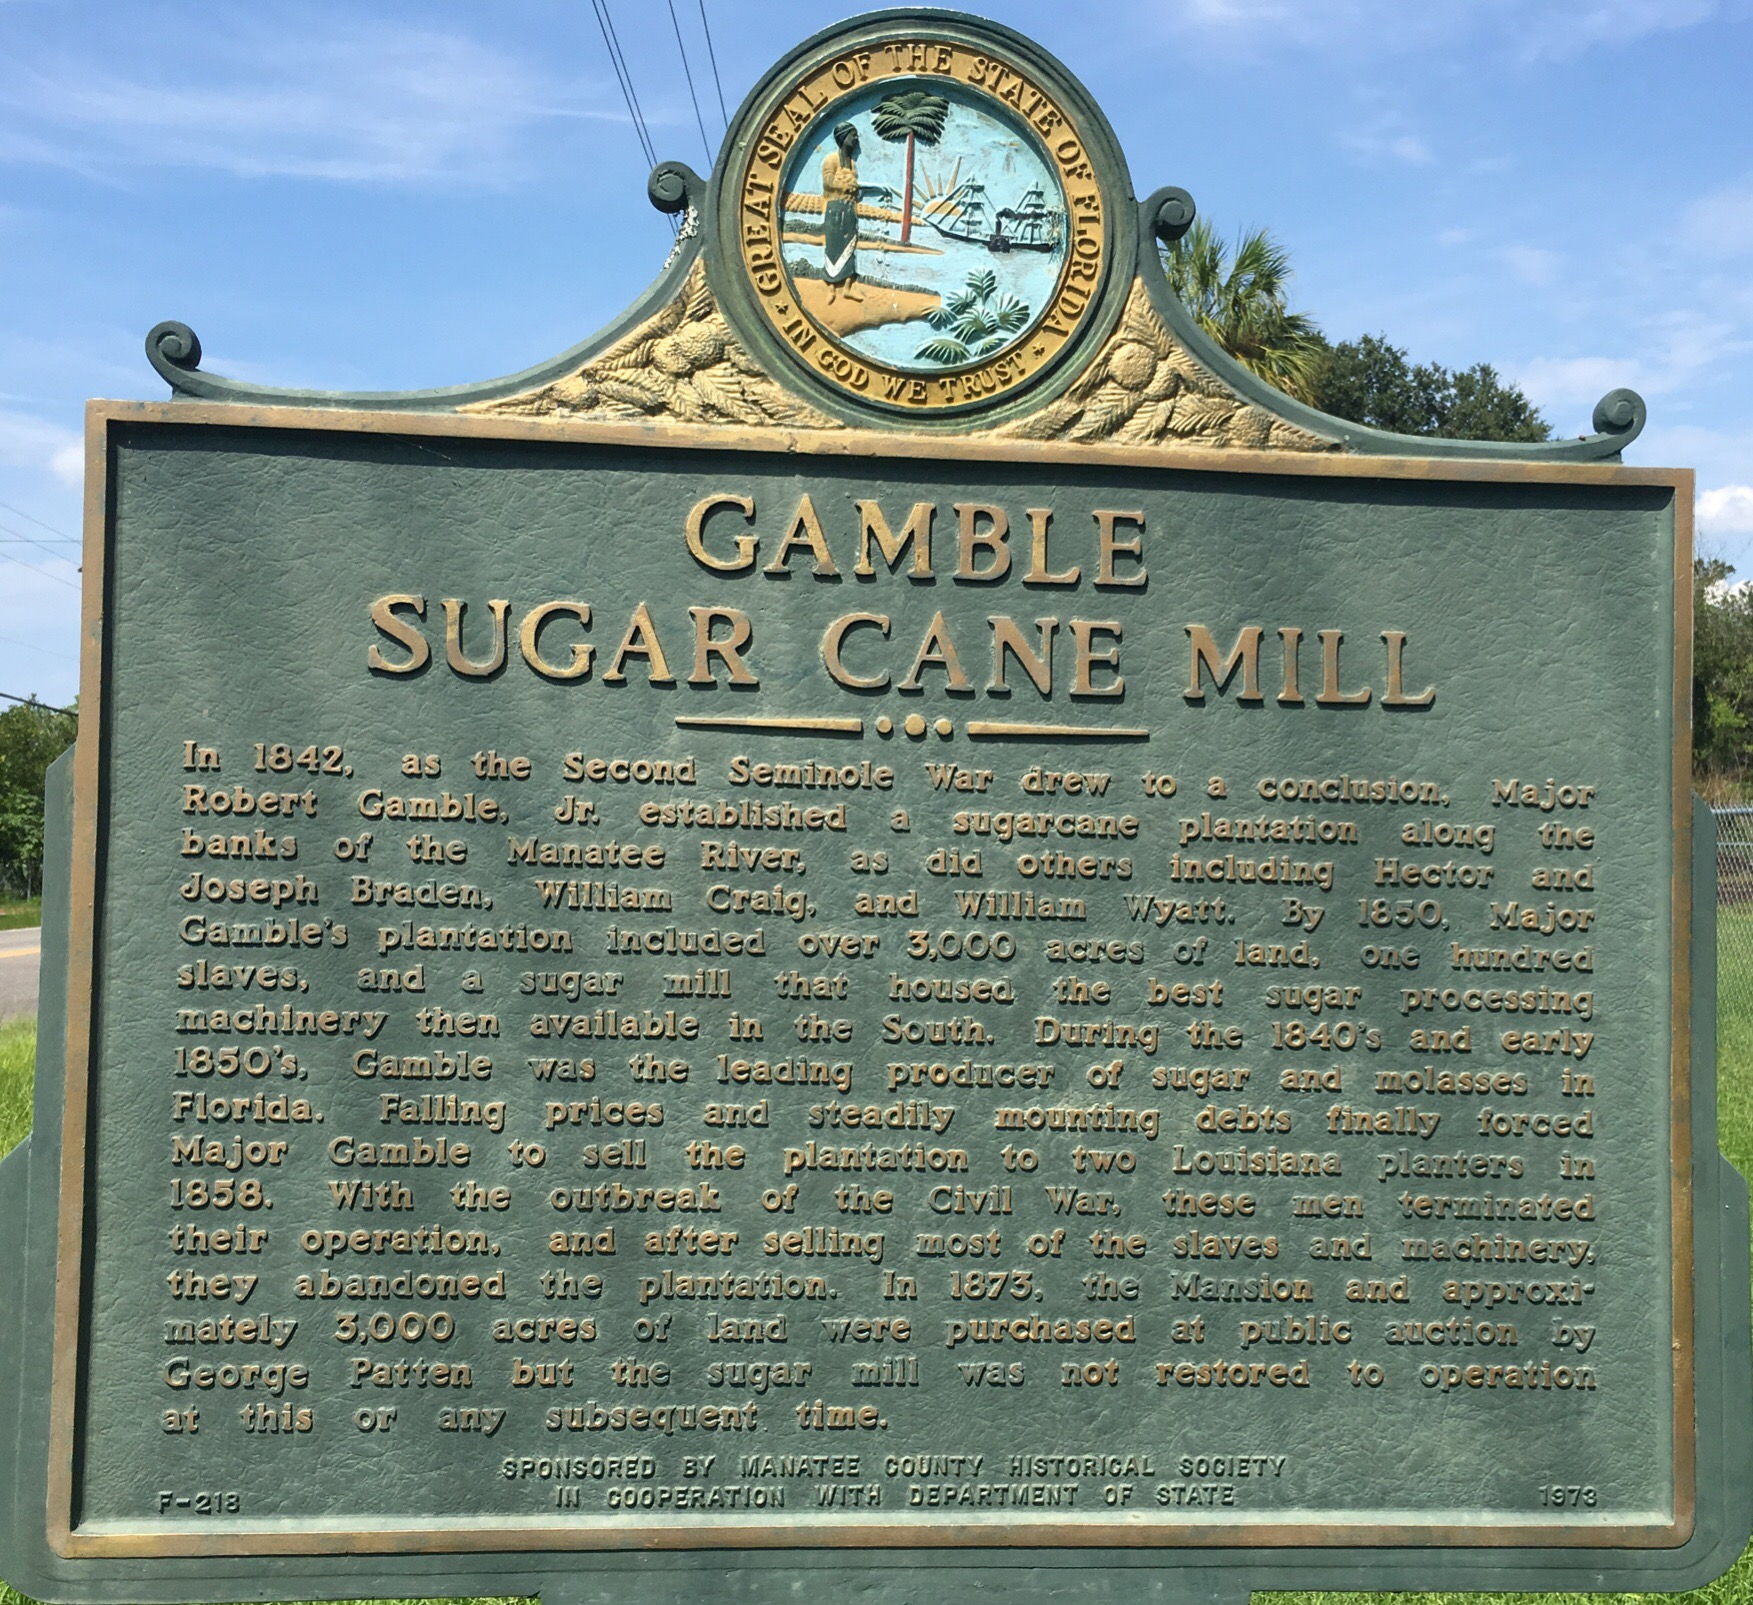 Gamble Sugar Cane Mill